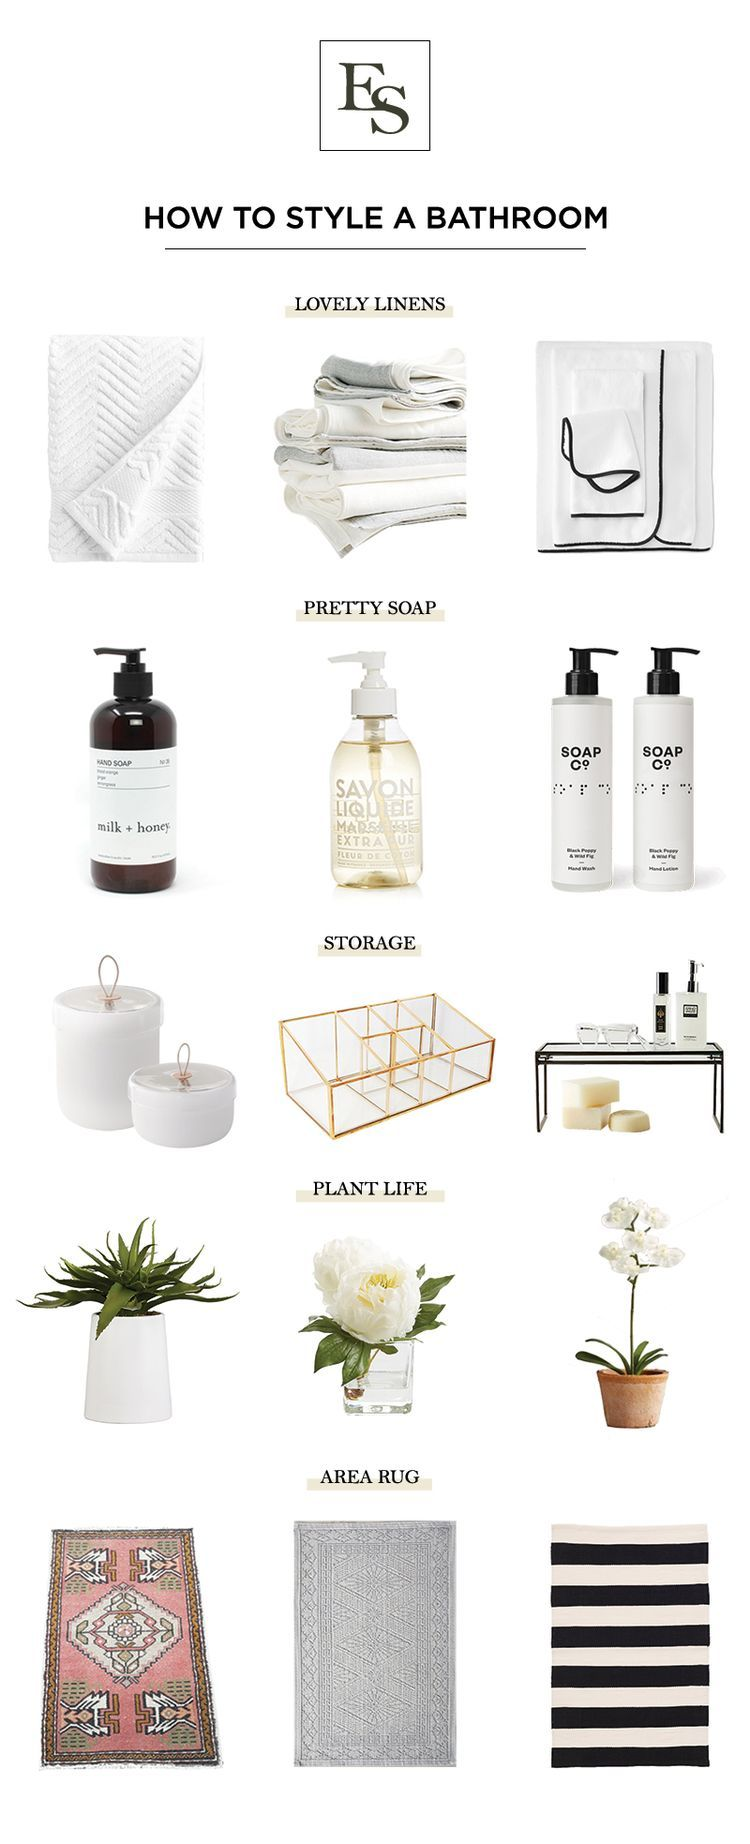 How to Style a Bathroom The Elizabeth Street Post A Lifestyle Blog